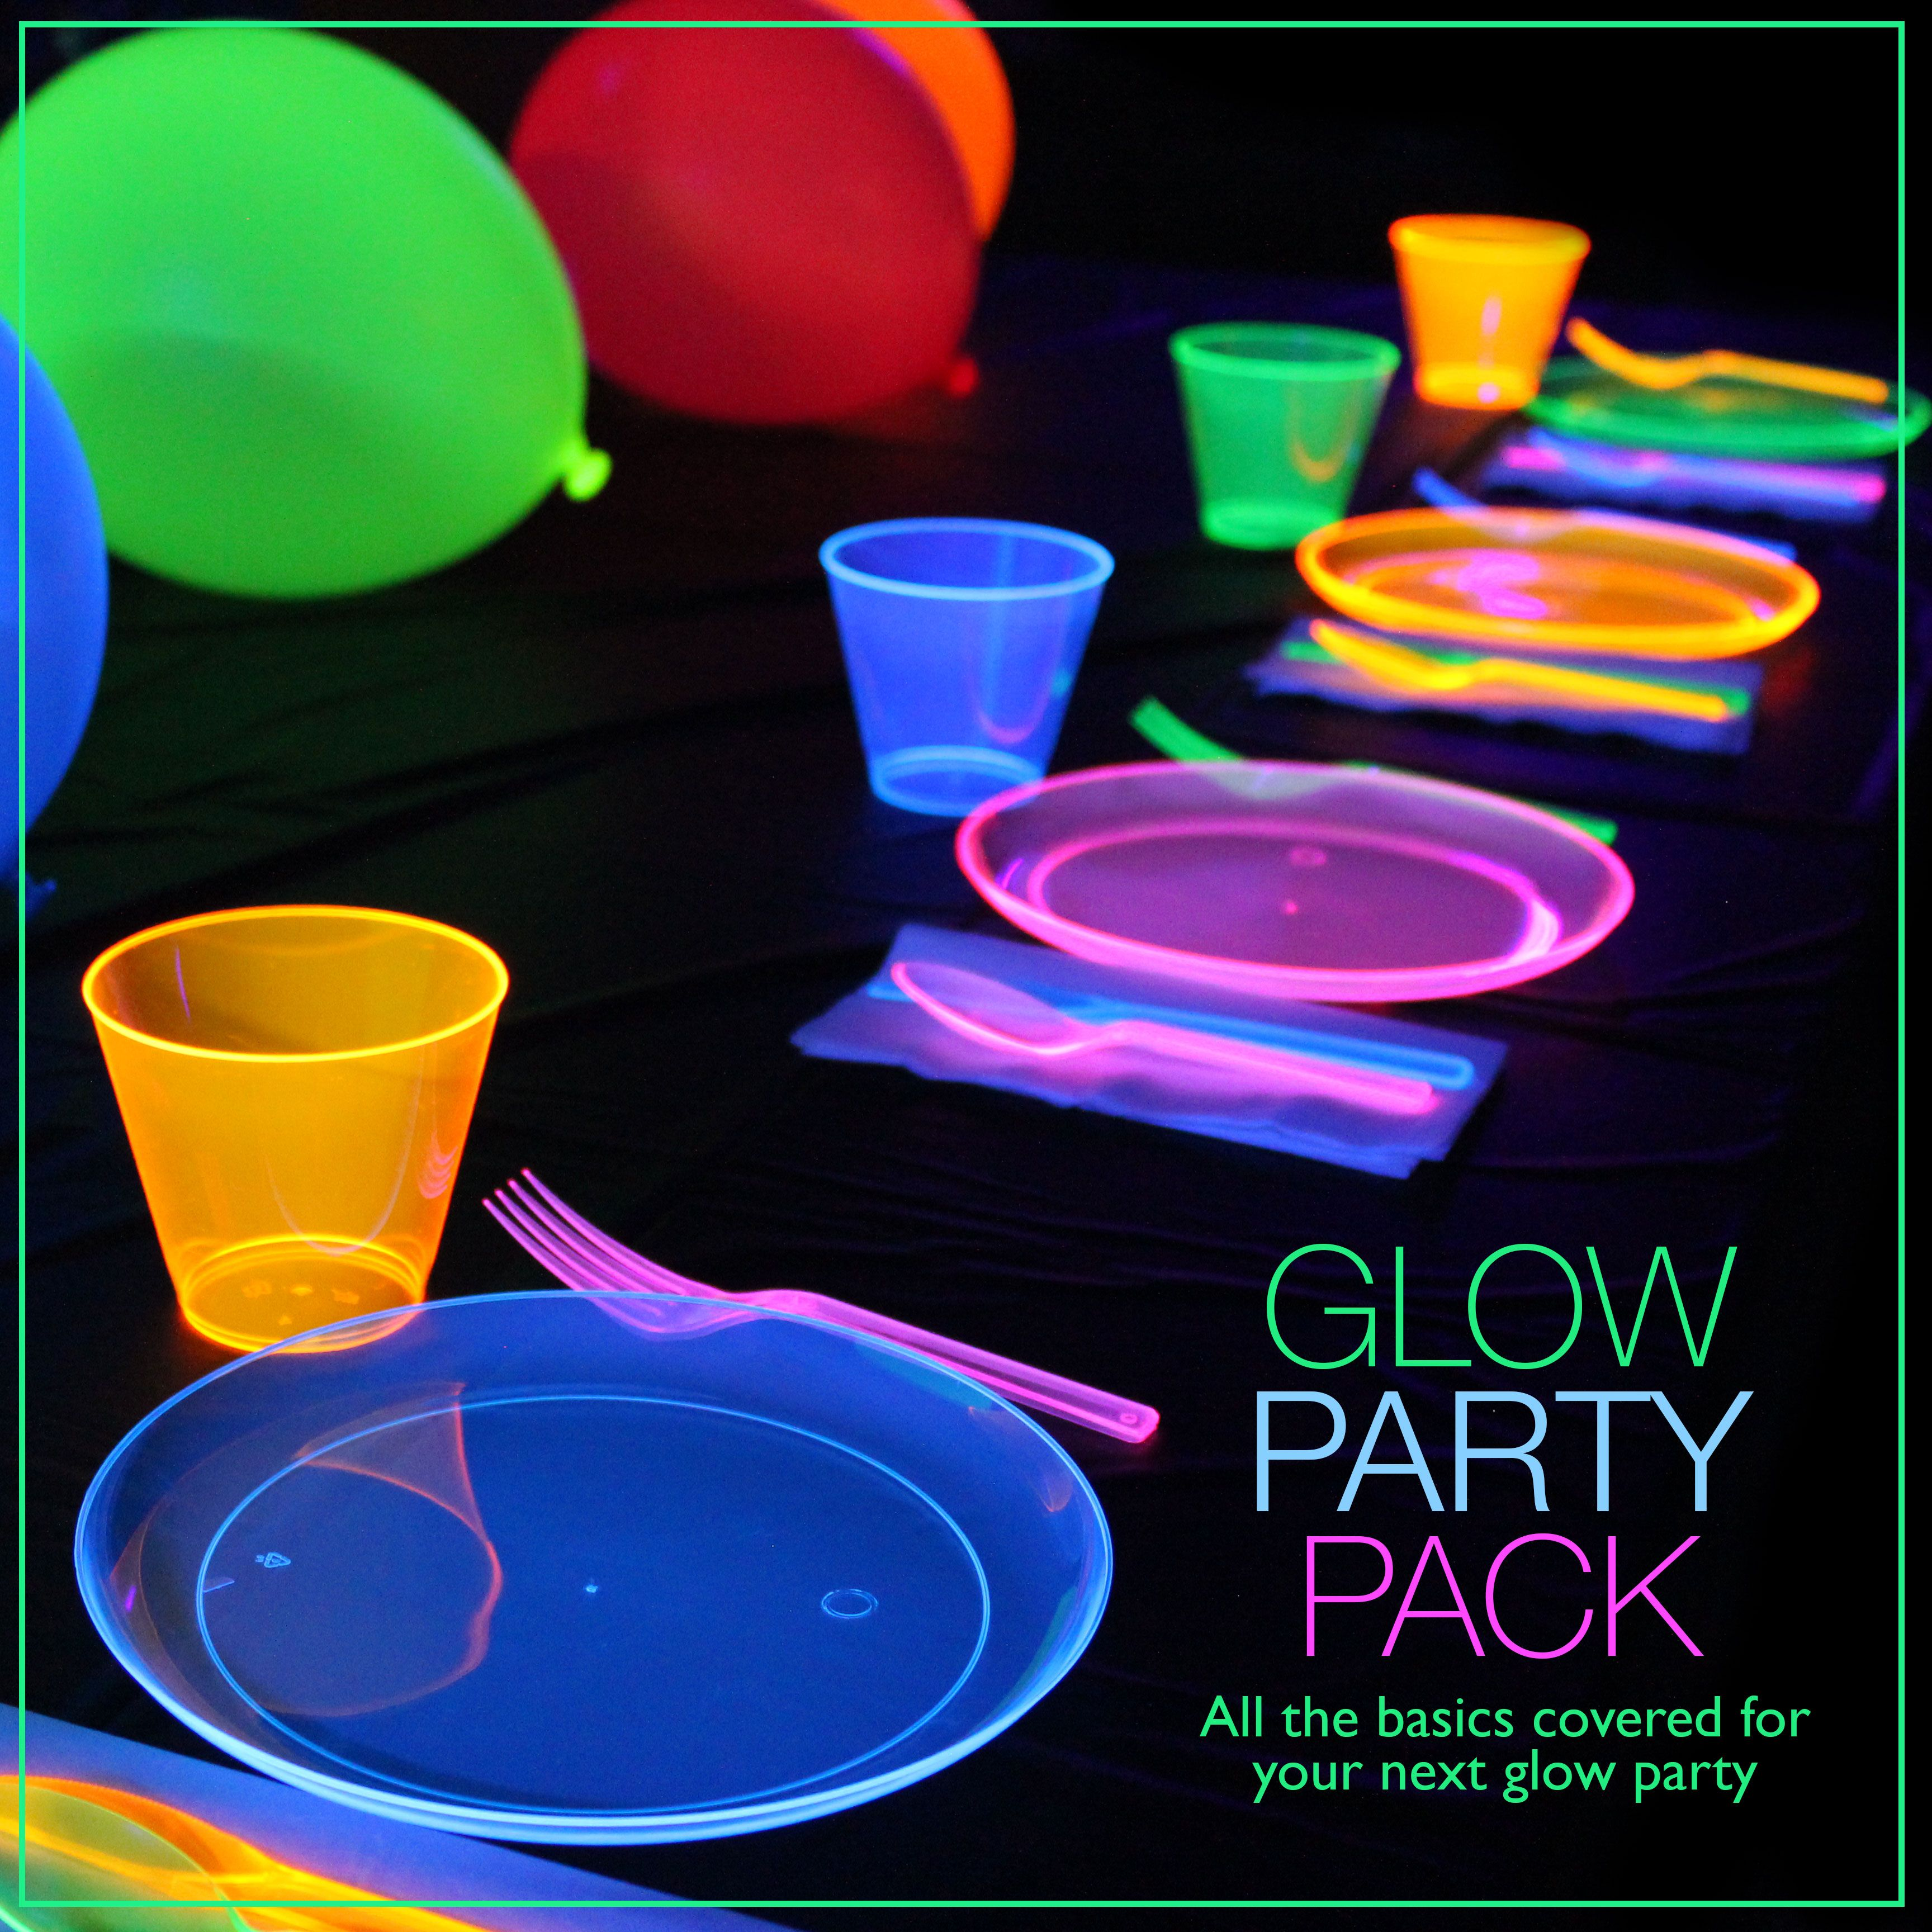 glow party pack | glow in the dark party ideas | glow in the dark